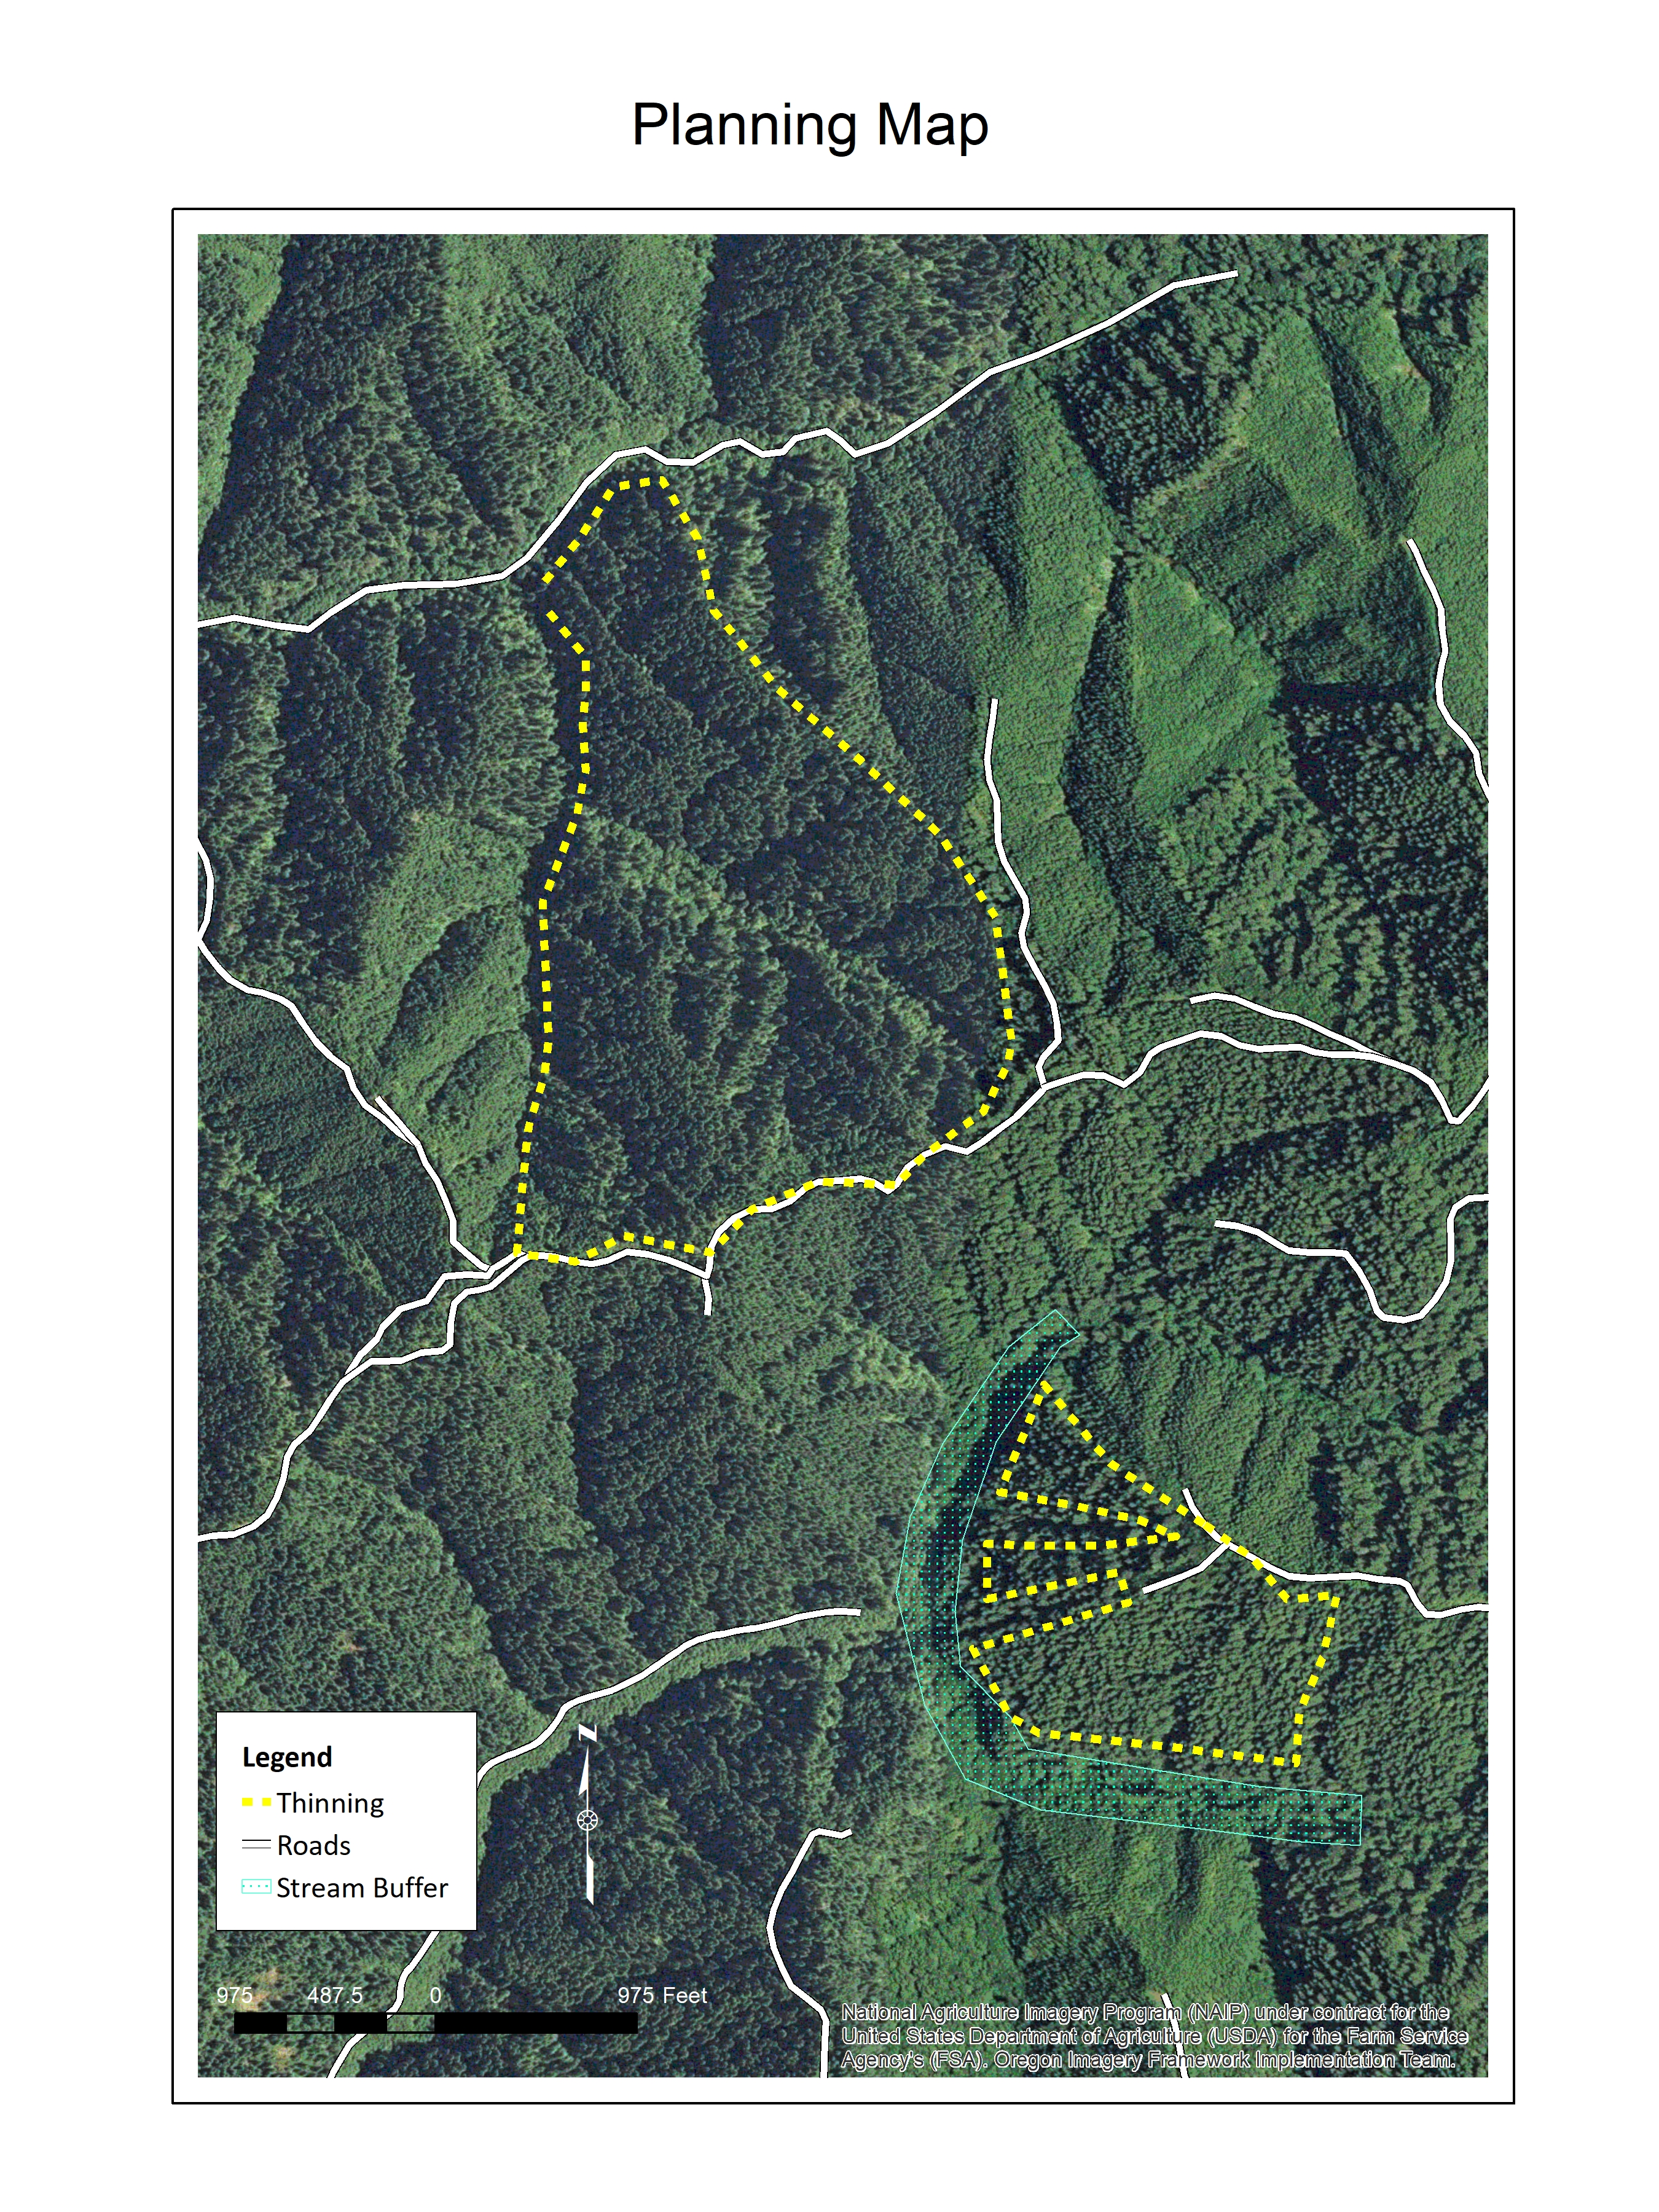 Image: Norma Kline Figure 15: A planning map created using GIS. Layers include an aerial photograph, thinning boundaries and a stream buffer.